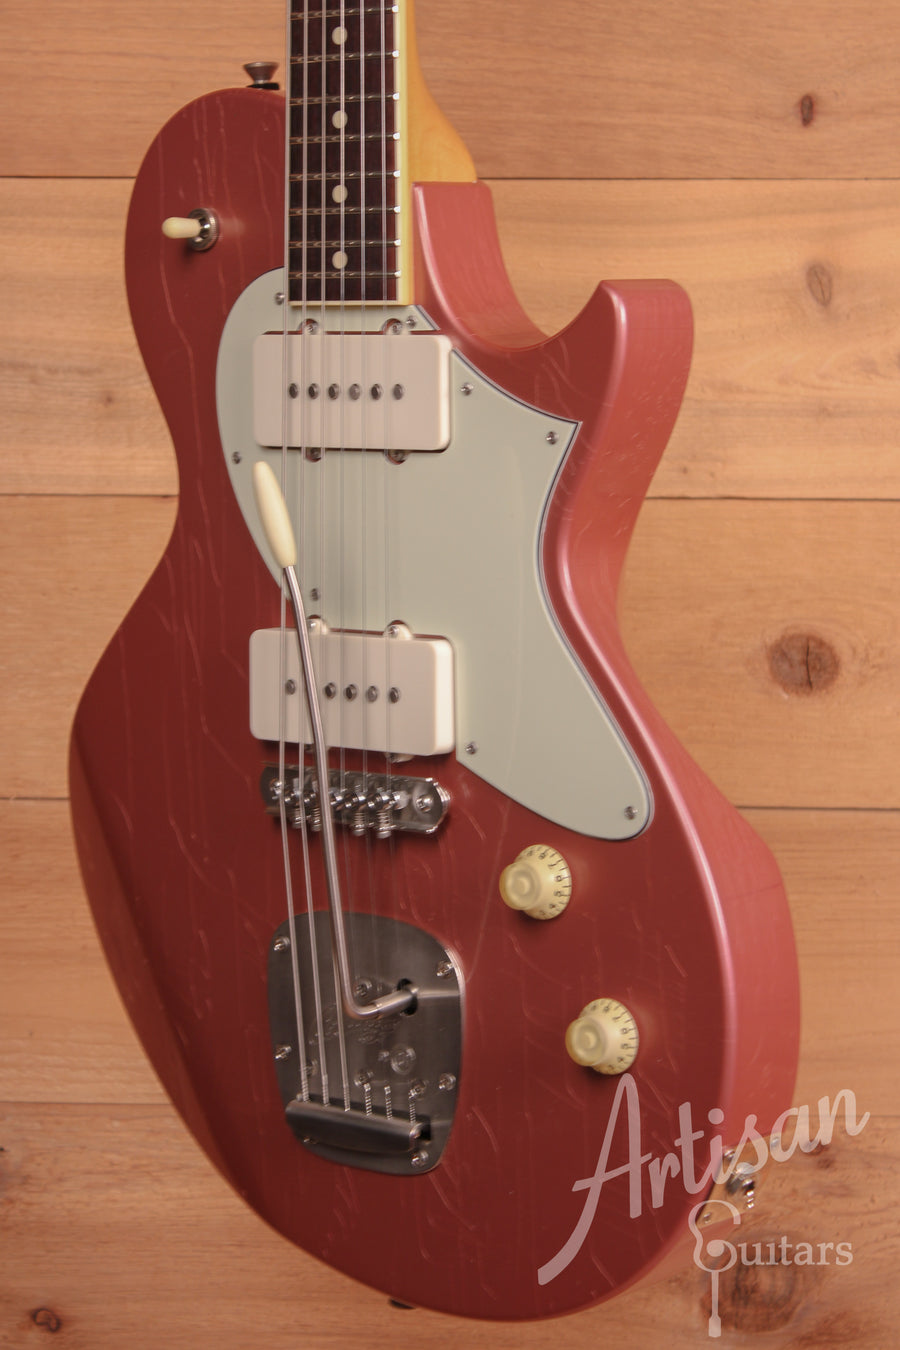 Collings 360 LT M Aged Burgundy Mist Finish with Mastery Bridge and Aged Hardware ID-11344